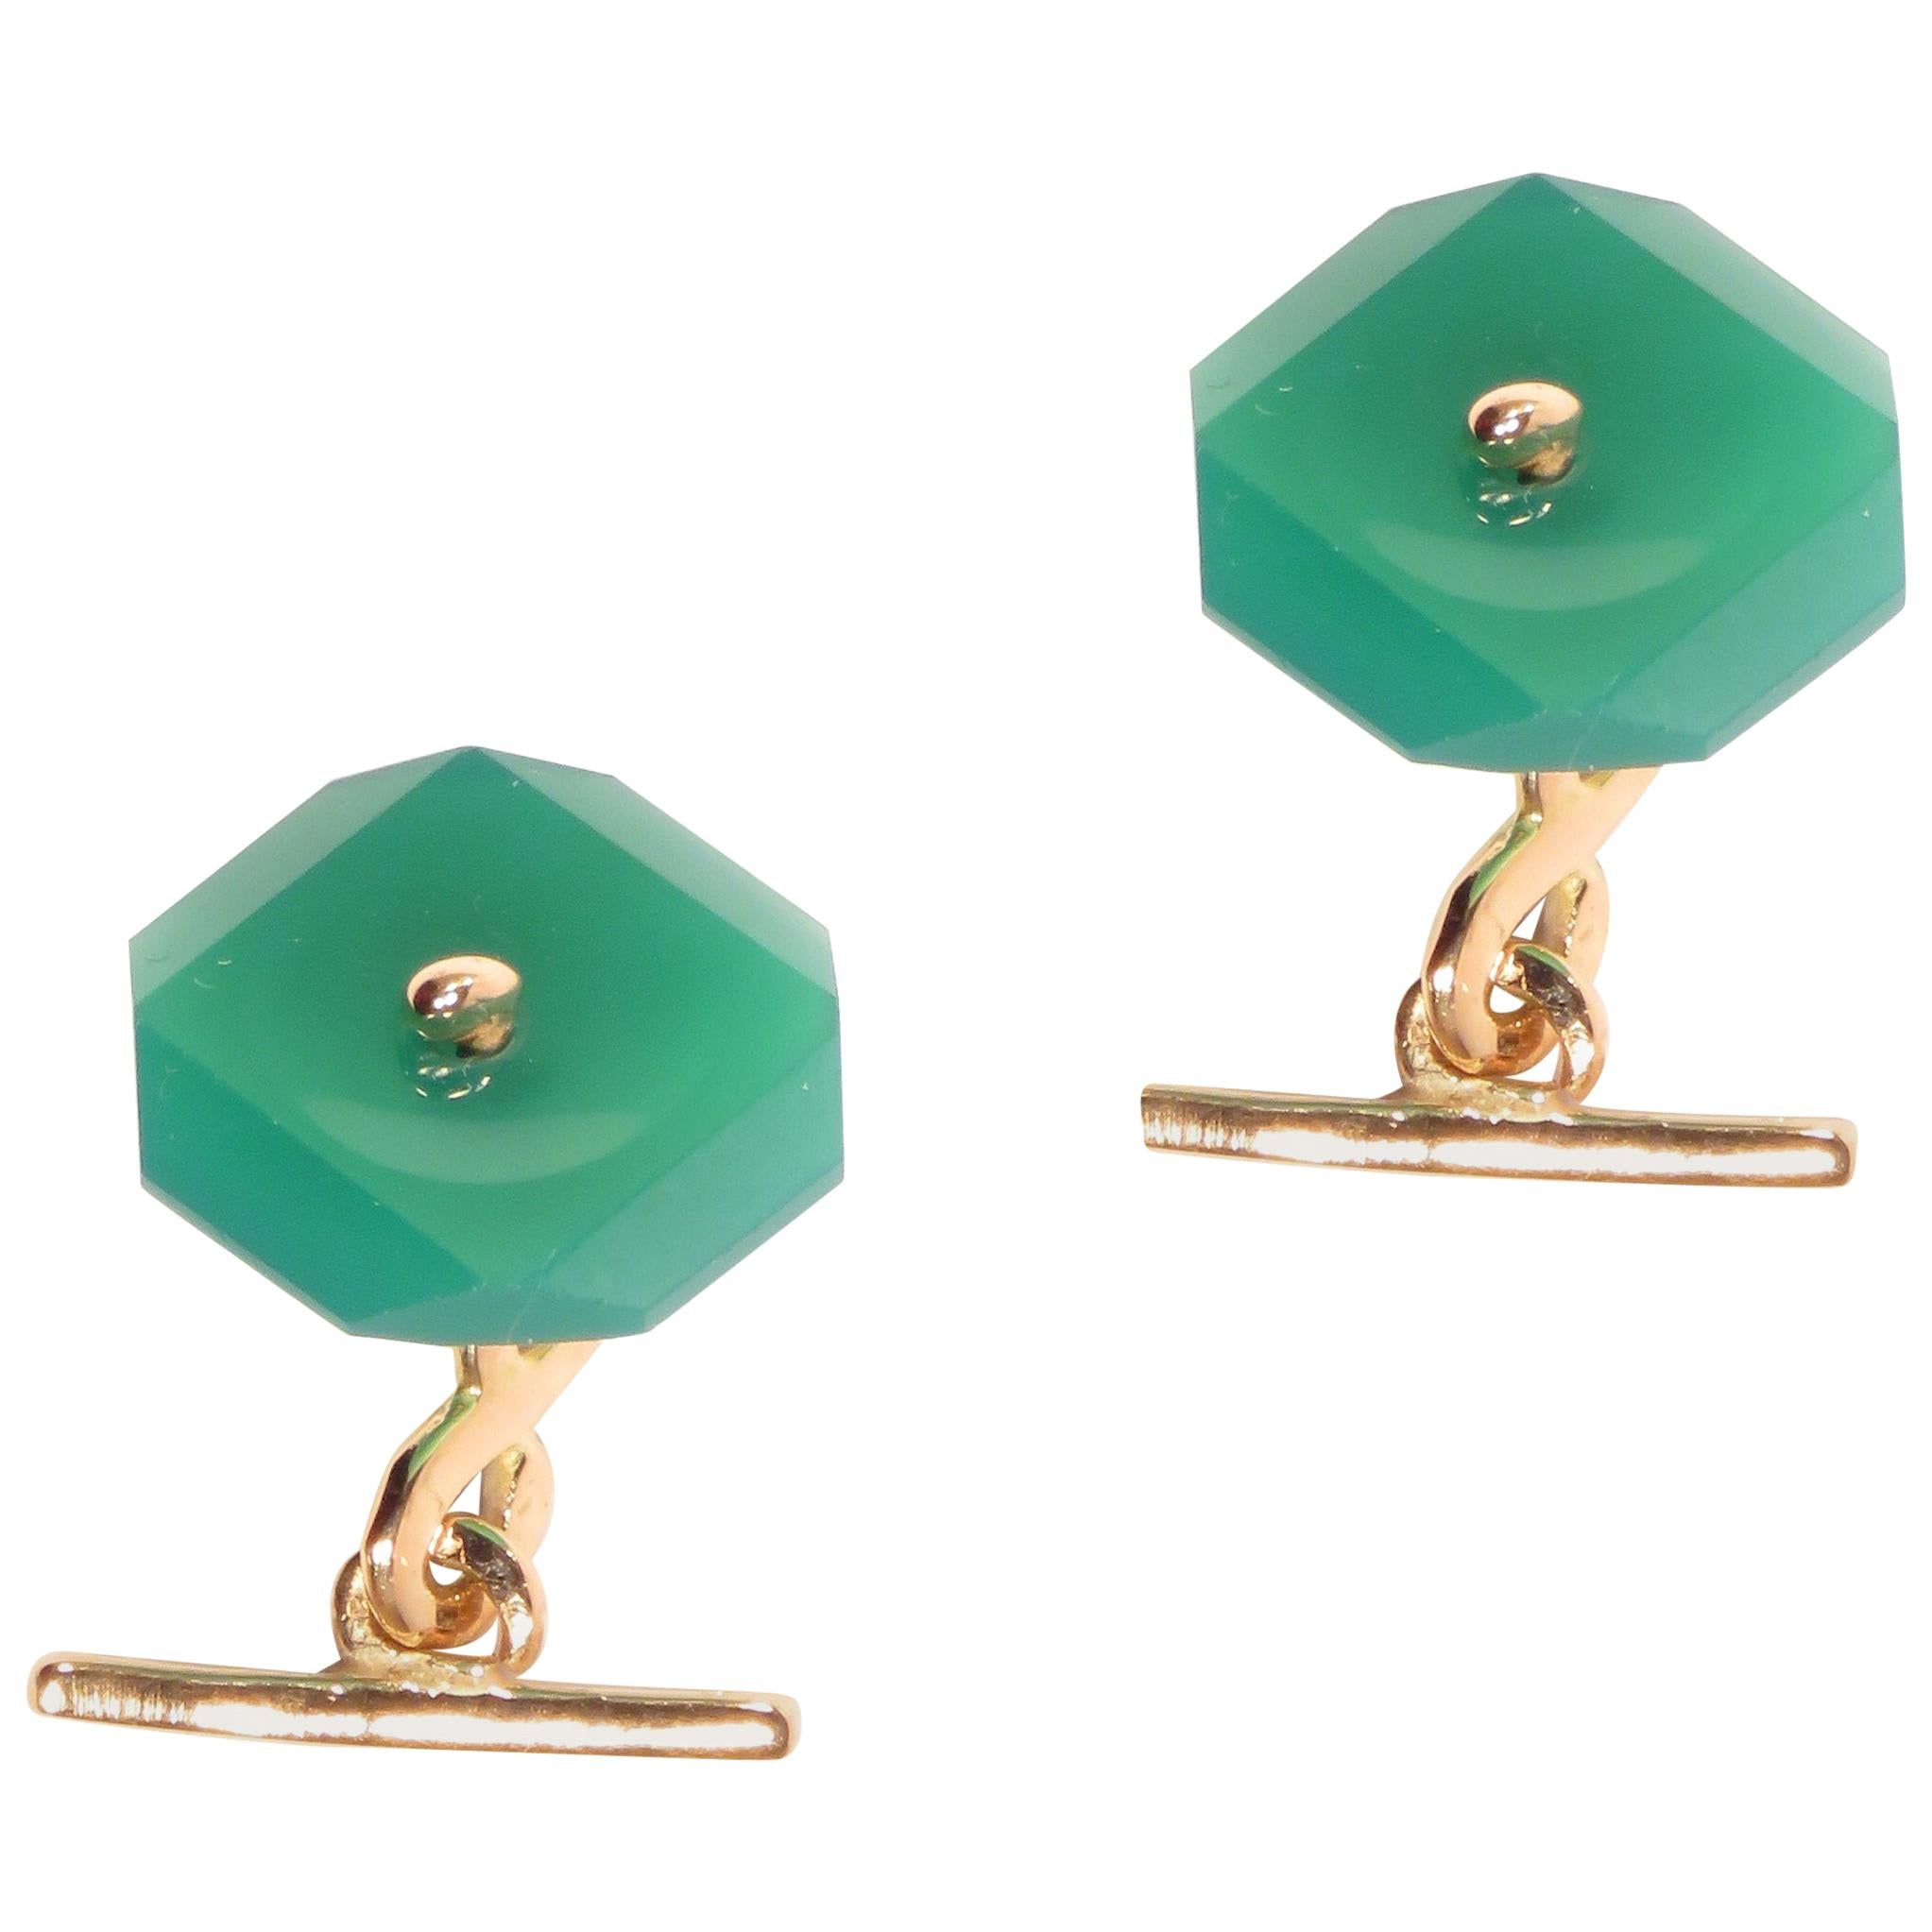 Chrysophrase Rose Gold Cufflinks Handcrafted in Italy by Botta Gioielli